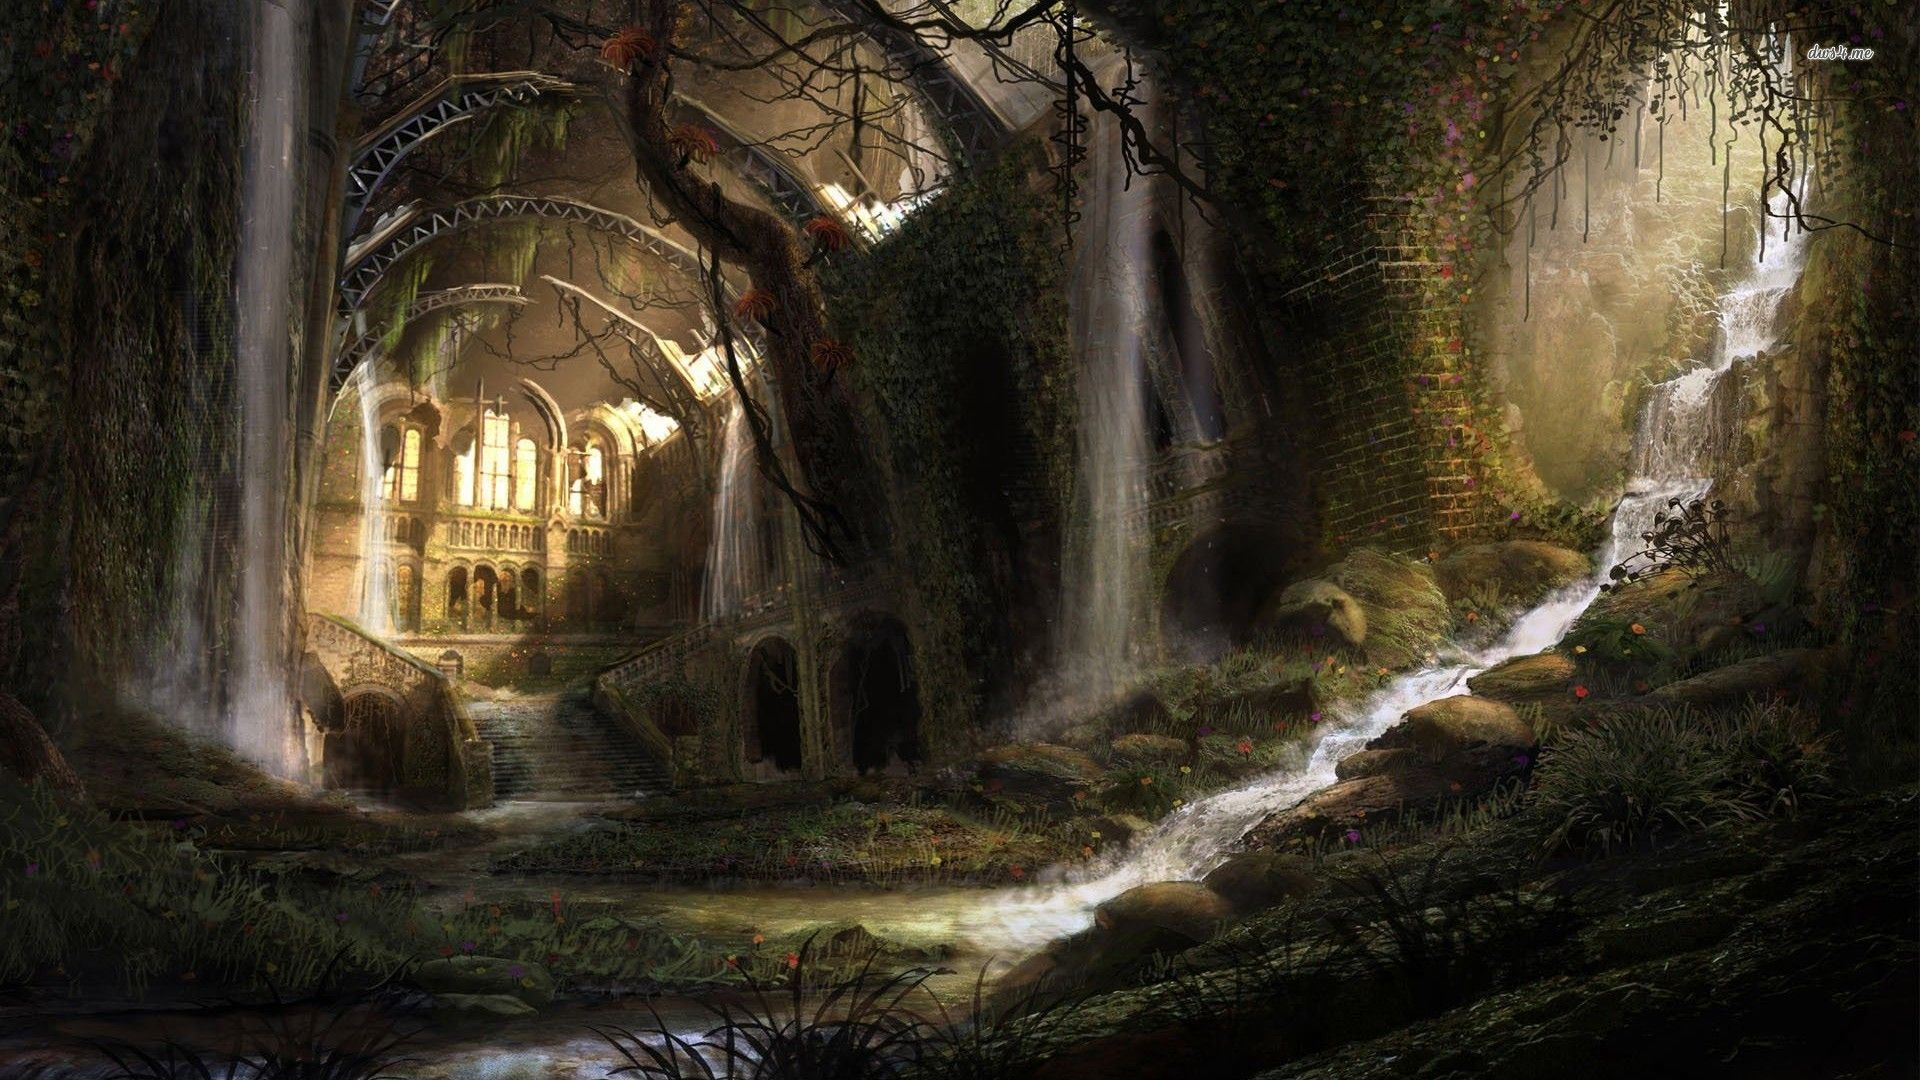 abandoned Medieval castle... if this doesn't conjure up a